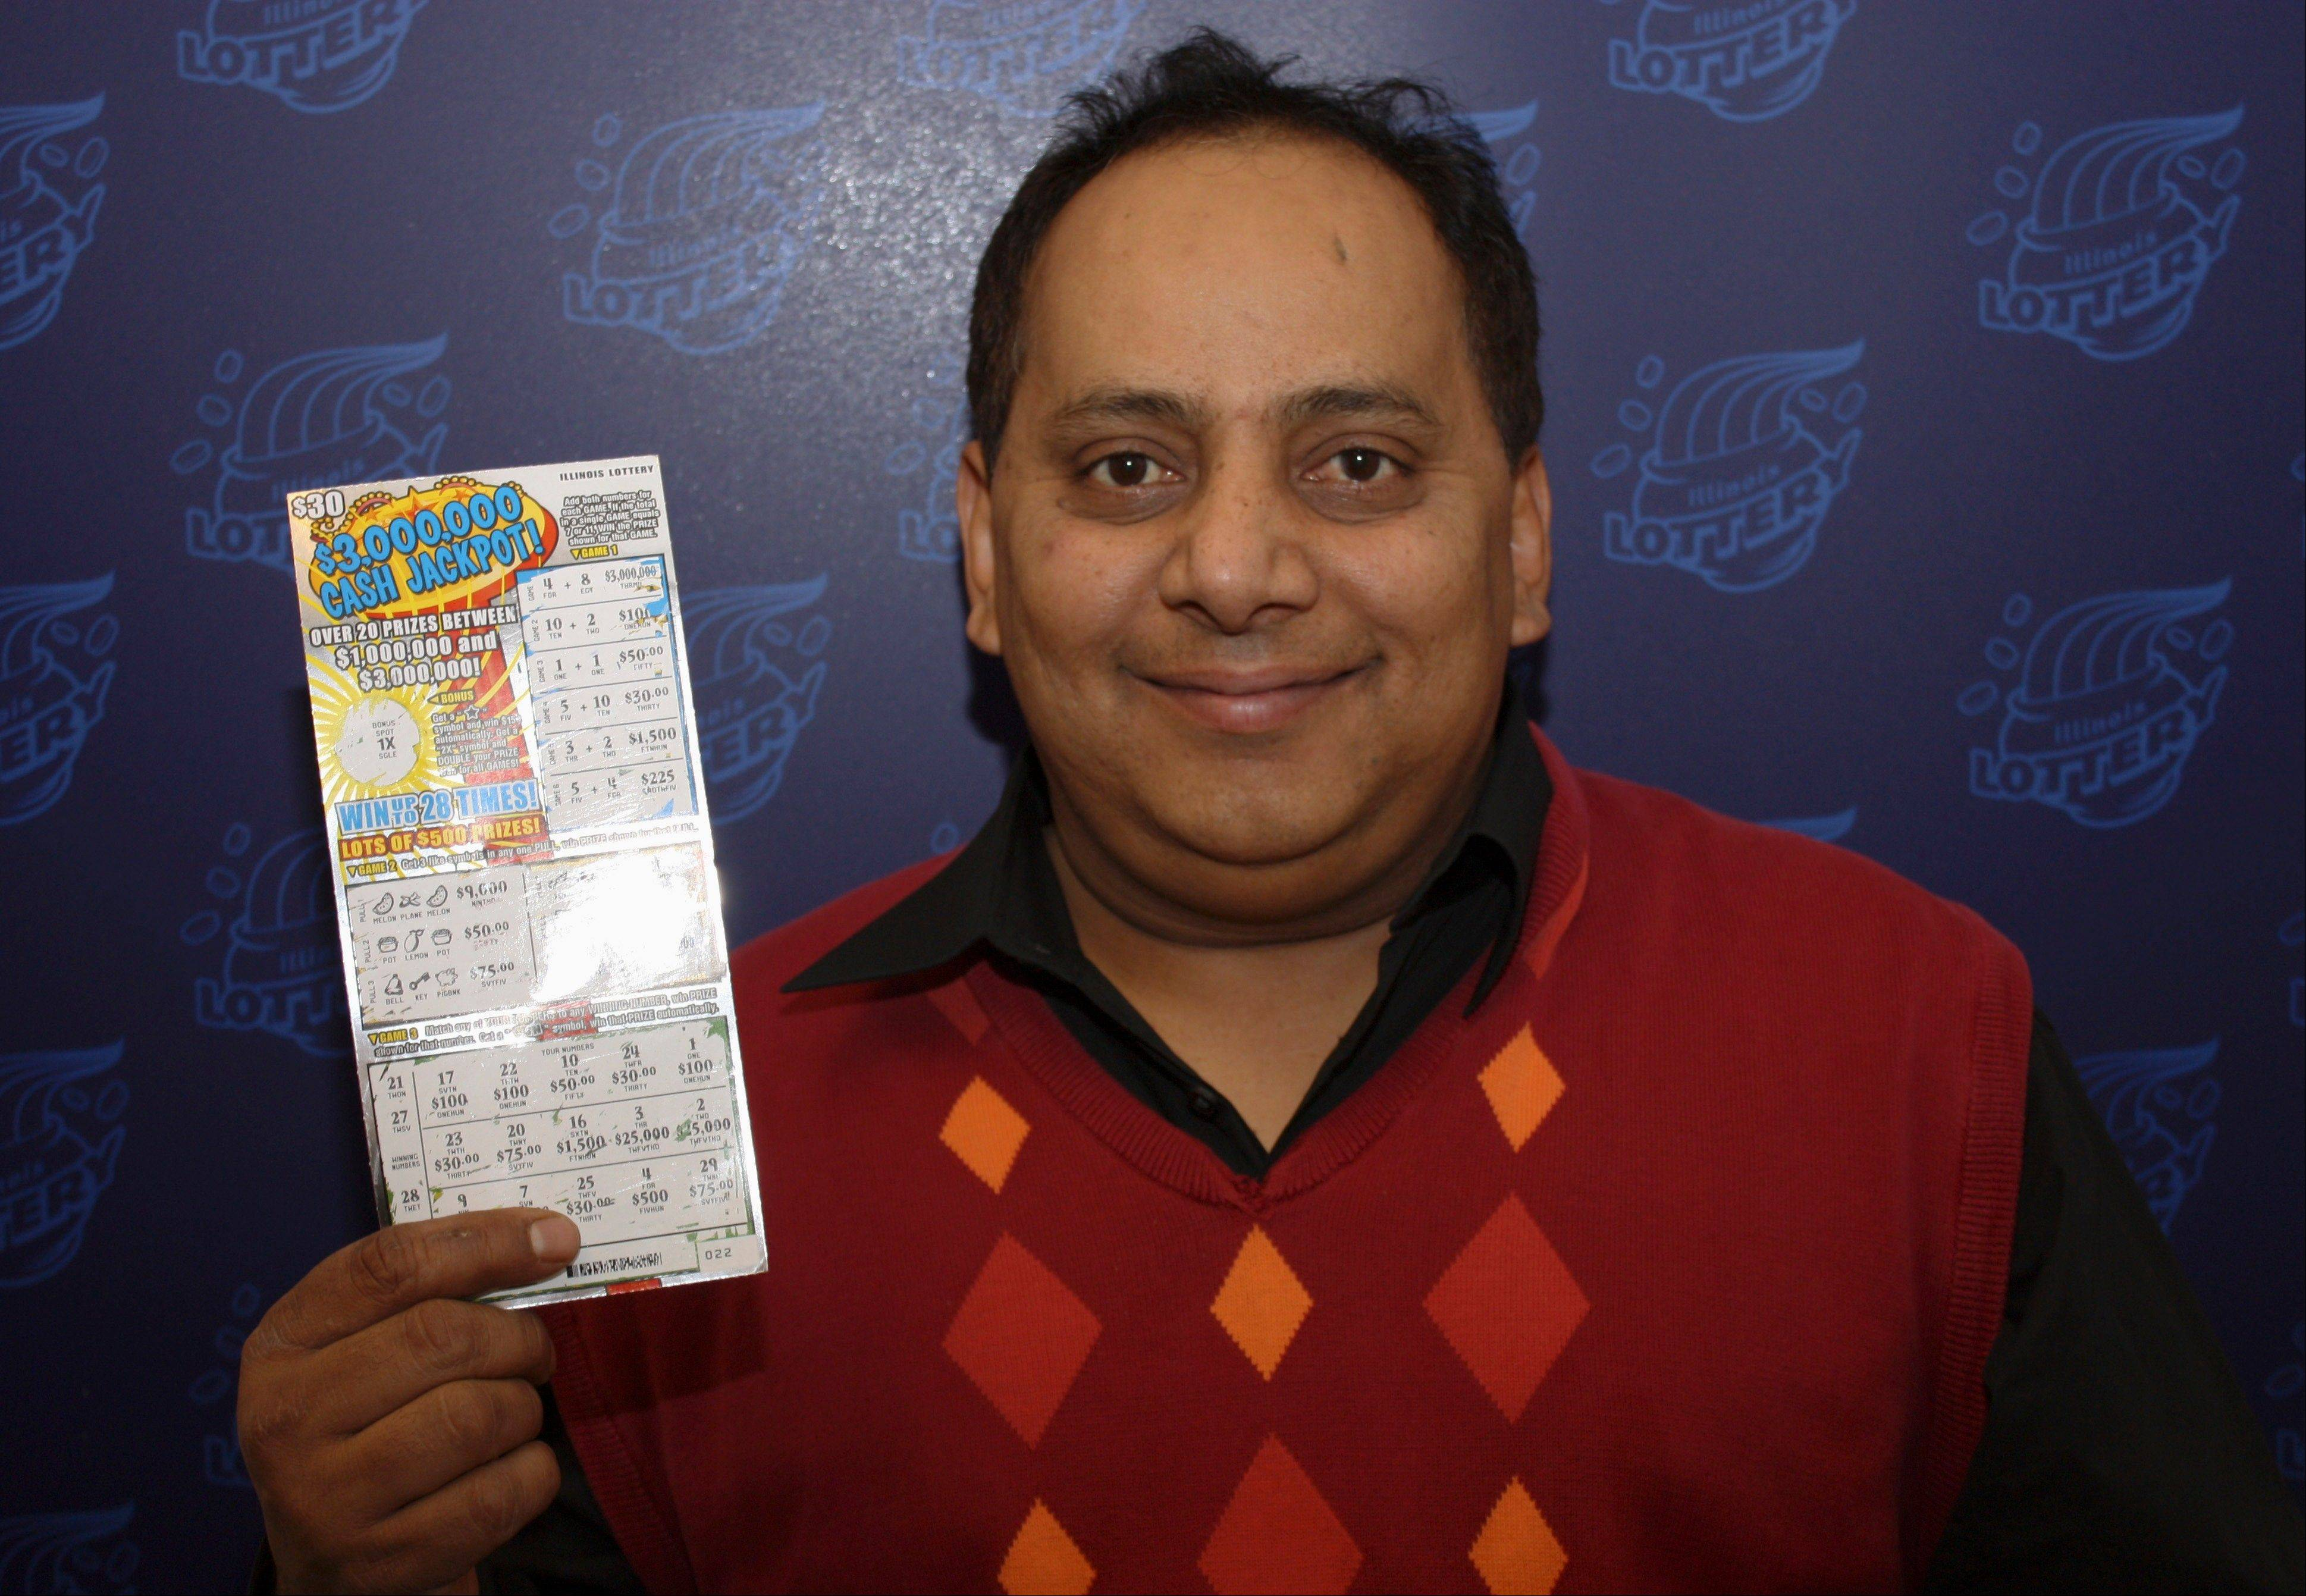 Associated Press Urooj Khan, 46, of Chicago, with a winning lottery ticket.